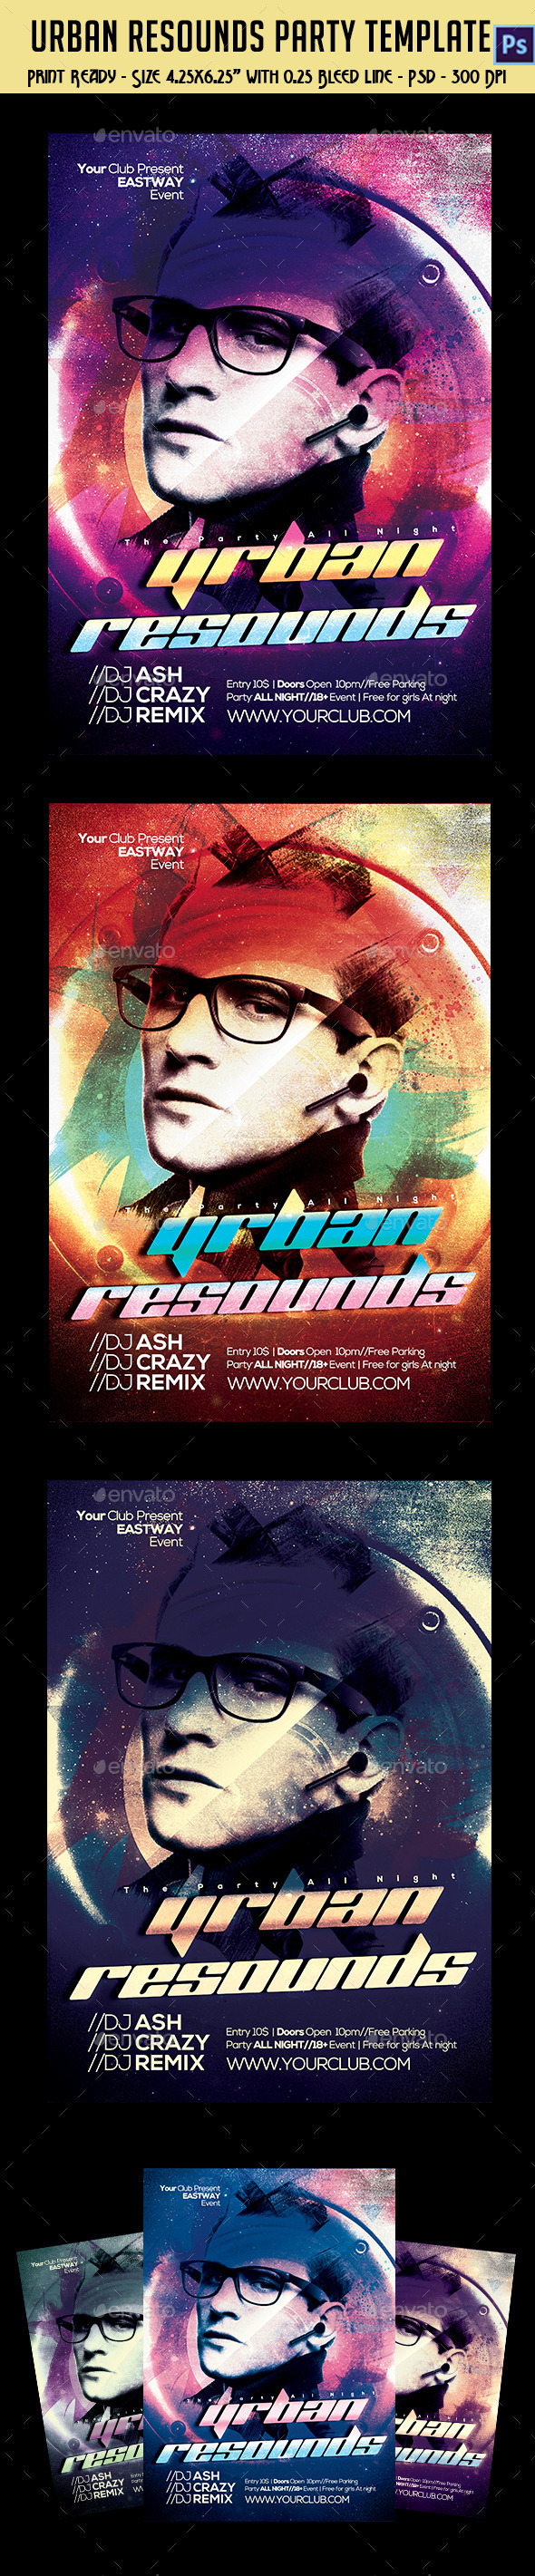 GraphicRiver Urban resound Party Flyer 10487396